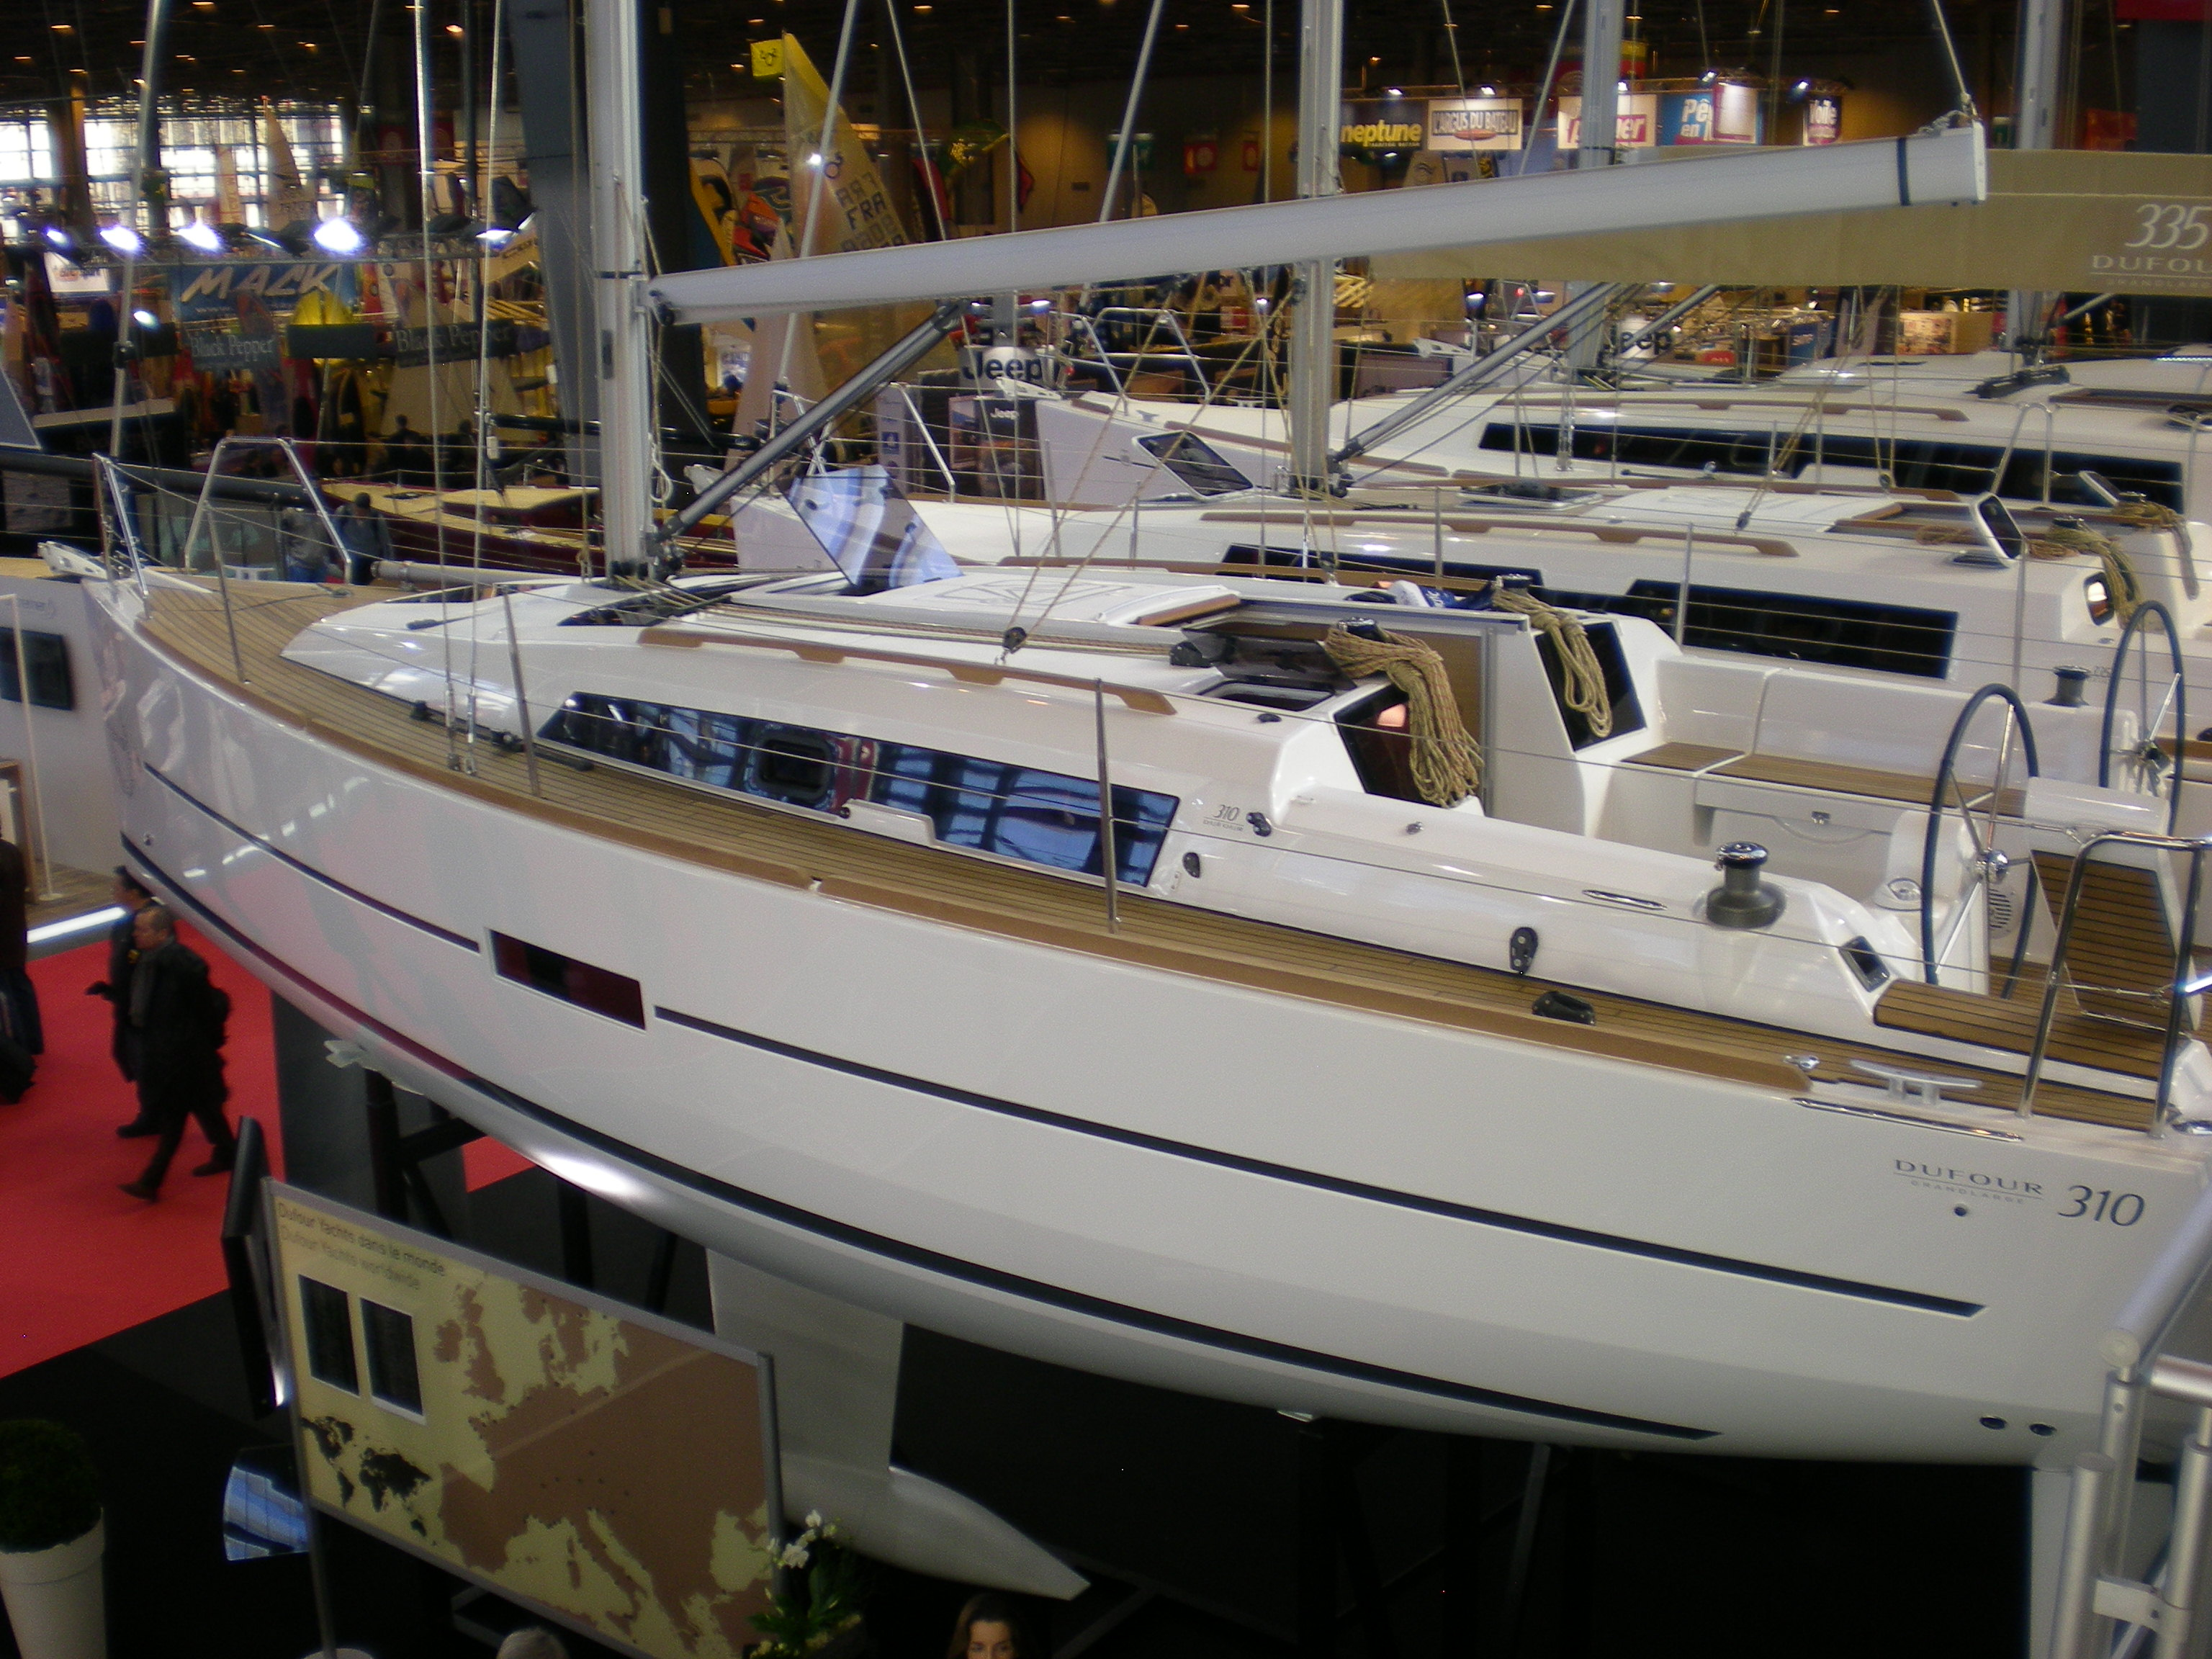 Dufour 310 Grand Large Premiered at Paris Boat Show 2013